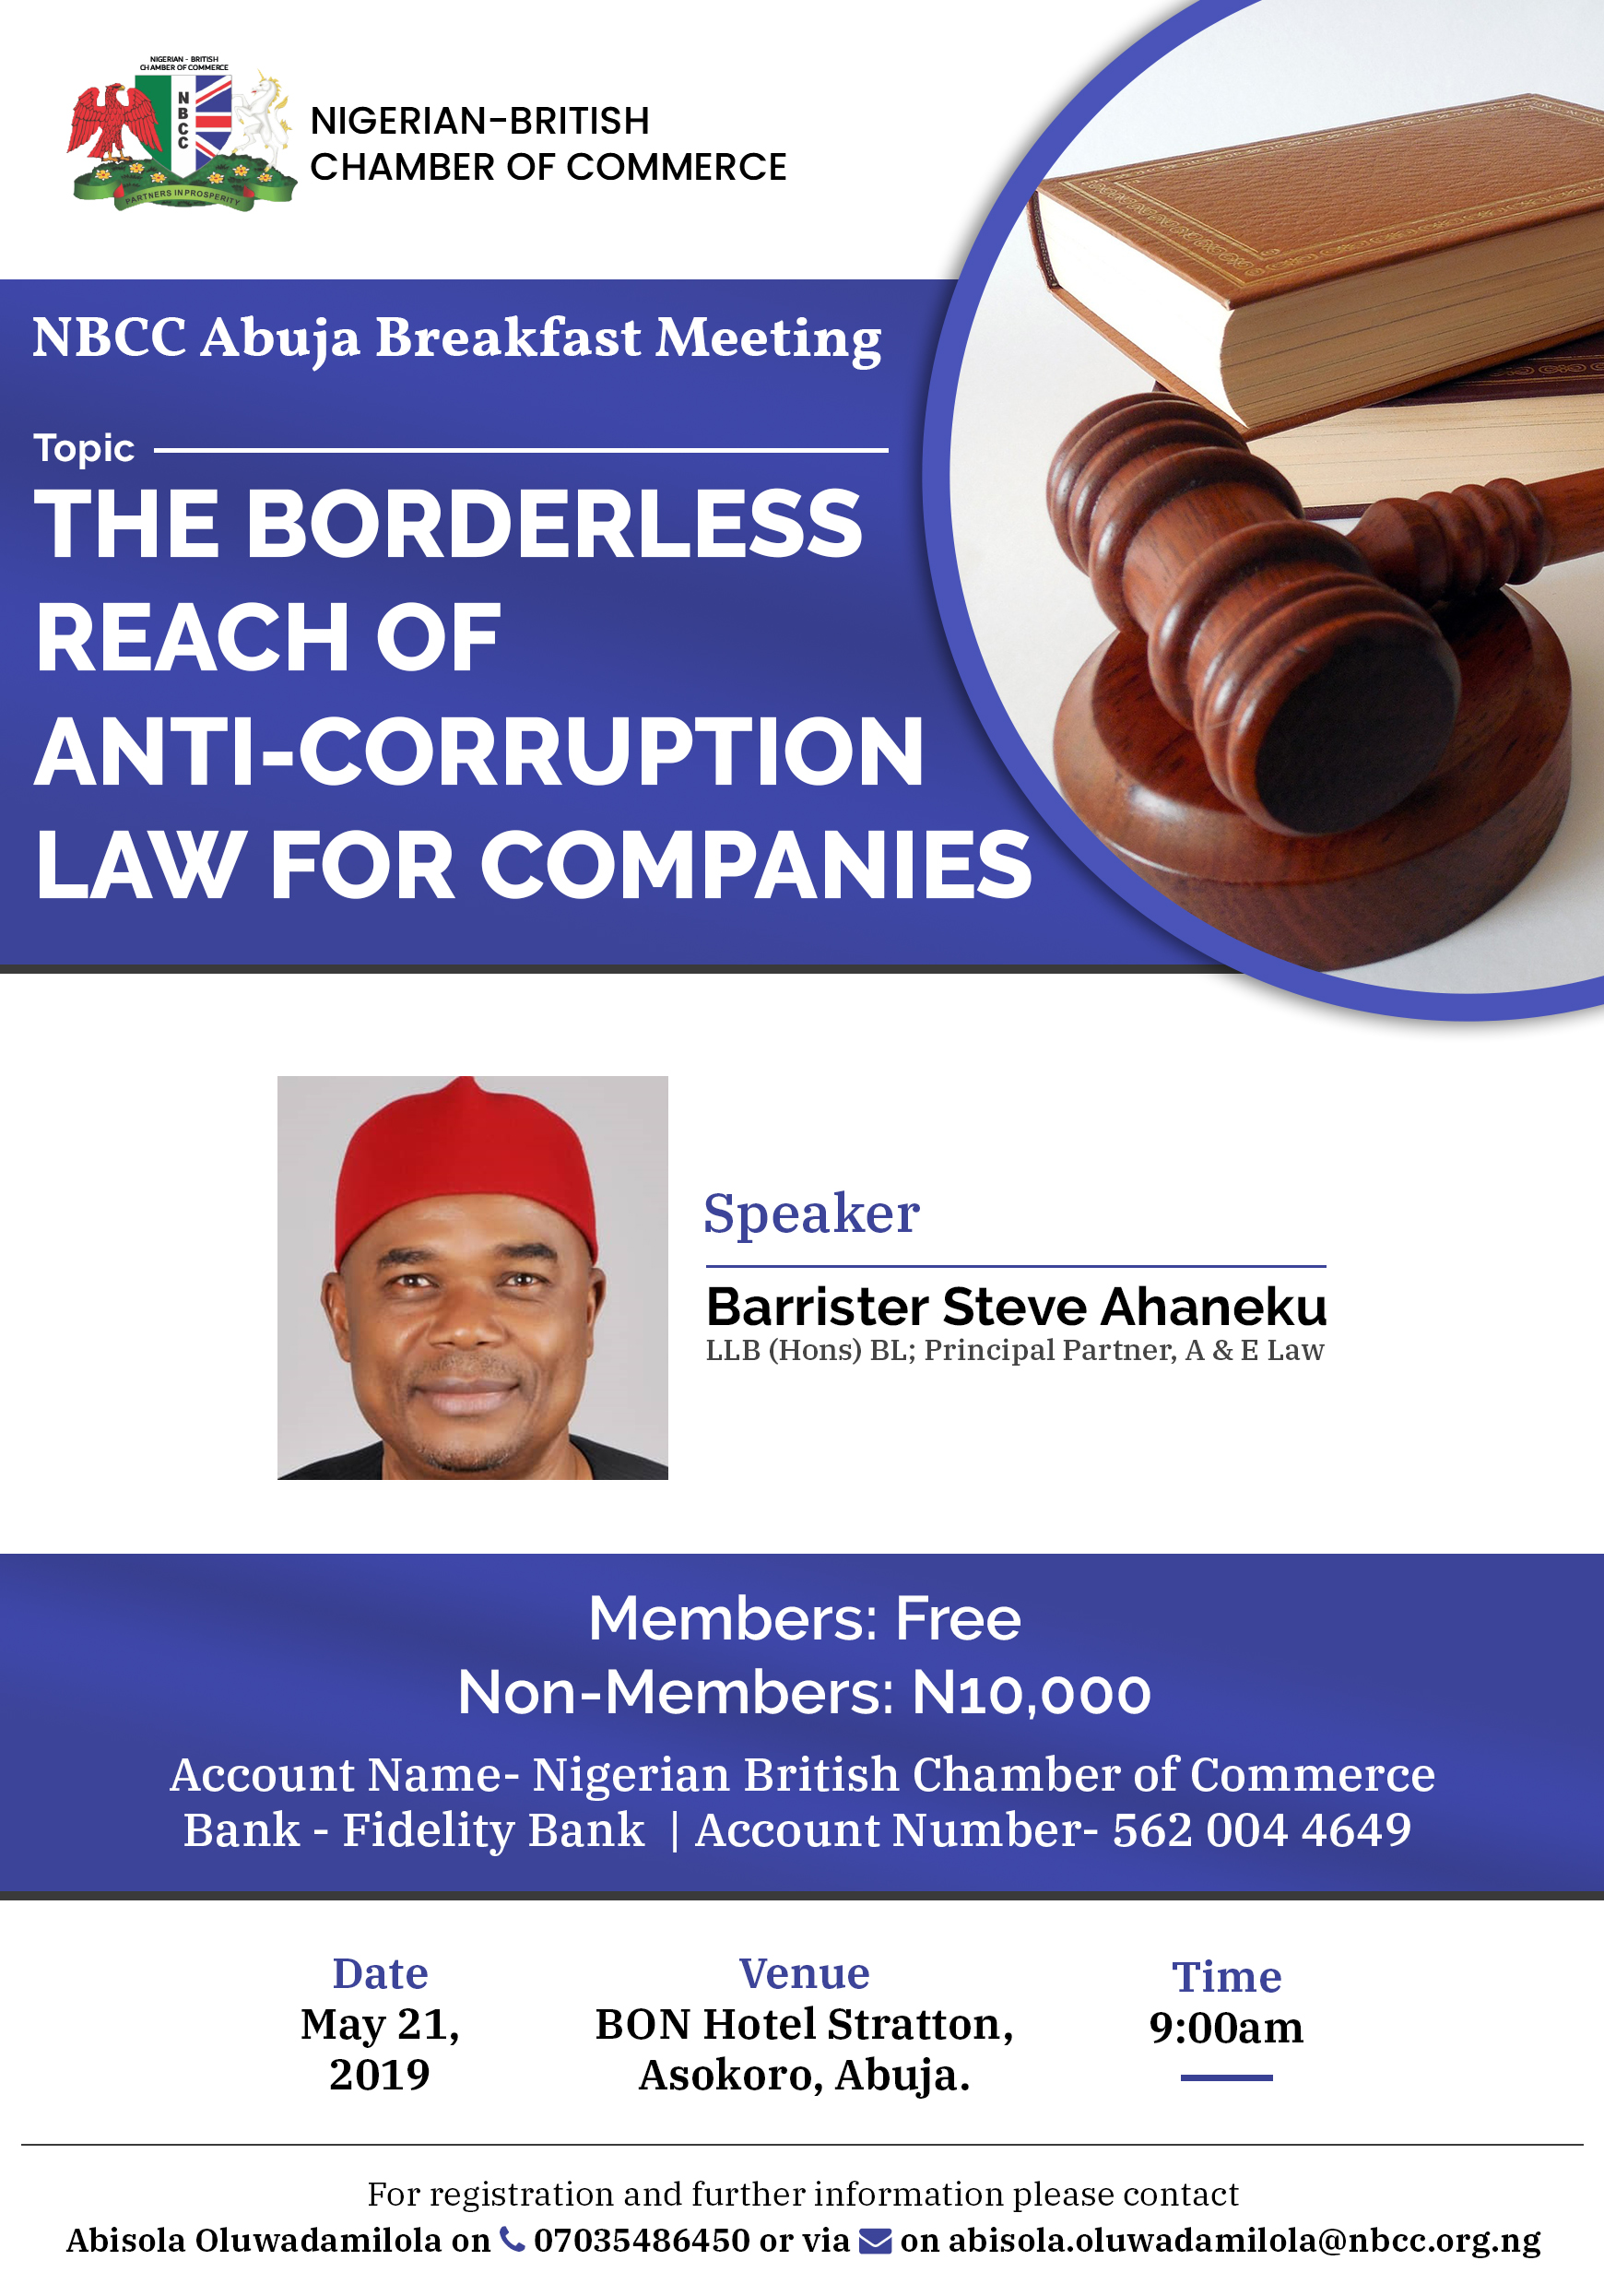 NBCC Abuja Breakfast Meeting Post free event in Nigeria using tickethub.ng, buy and sell tickets to event